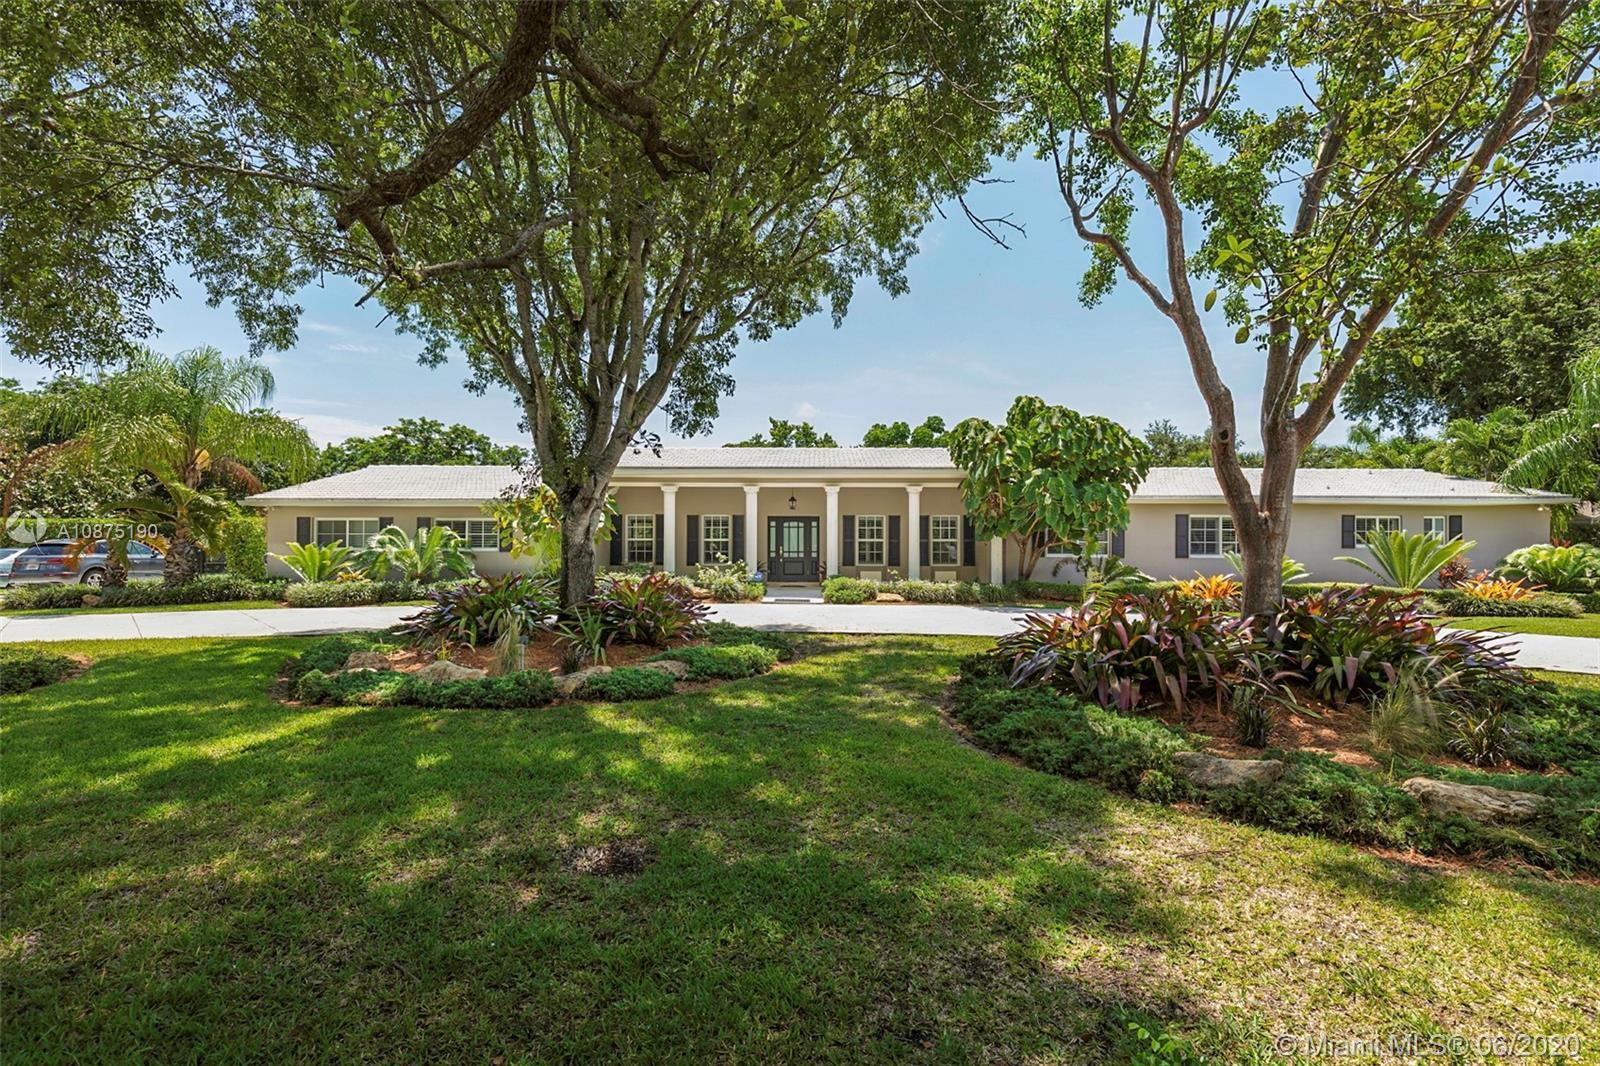 Warm, inviting, and impeccably maintained Pinecrest acre estate surrounded by majestic oaks on perfe